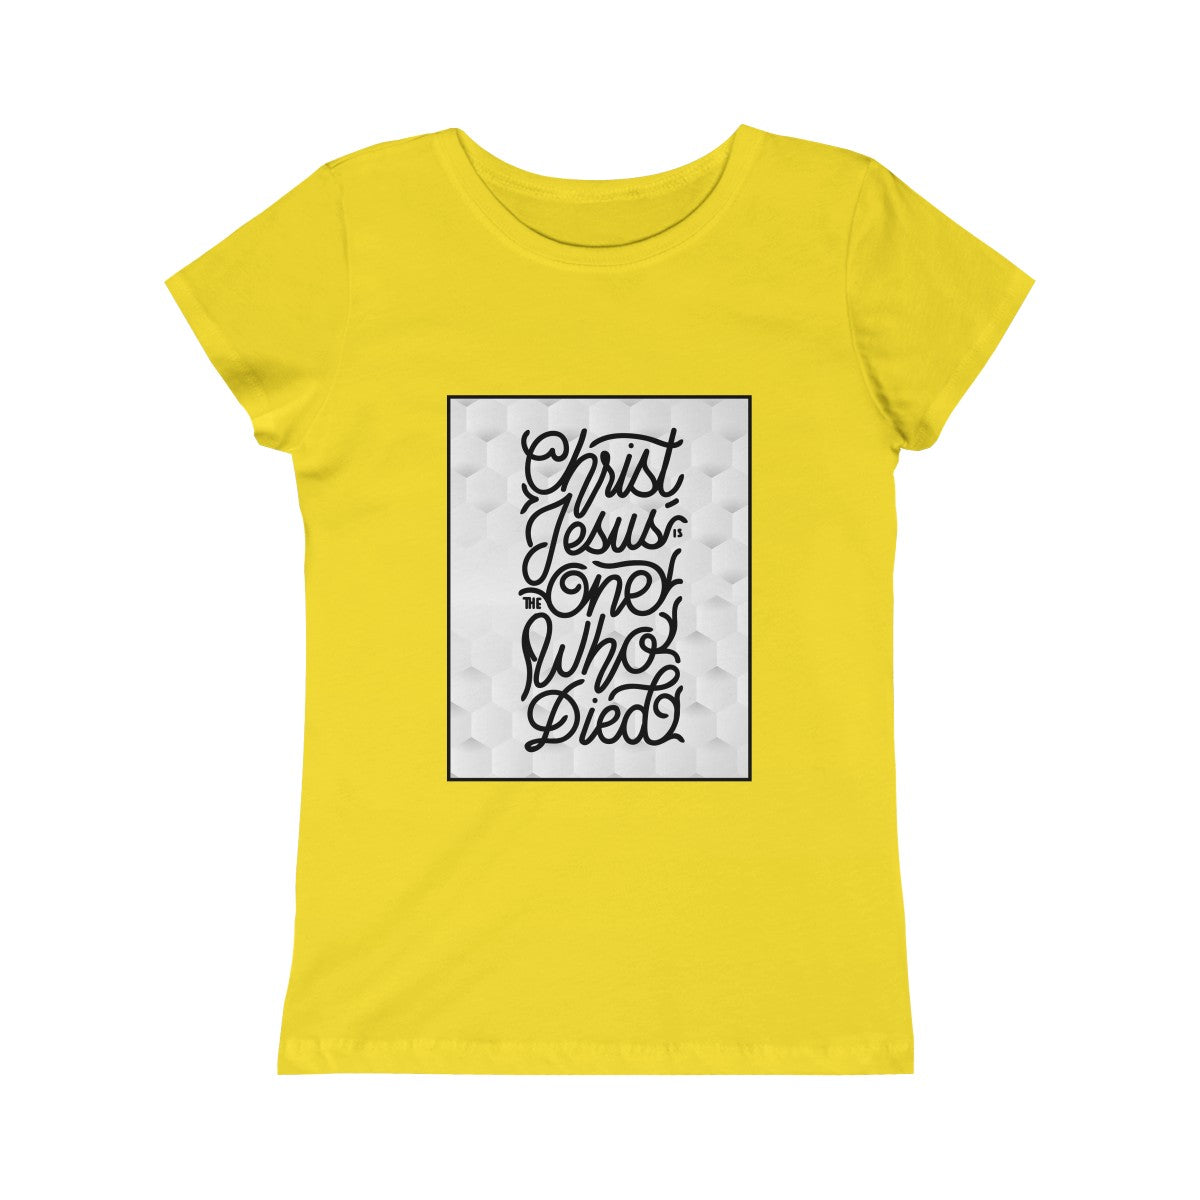 One Who Died Girls Princess Tee